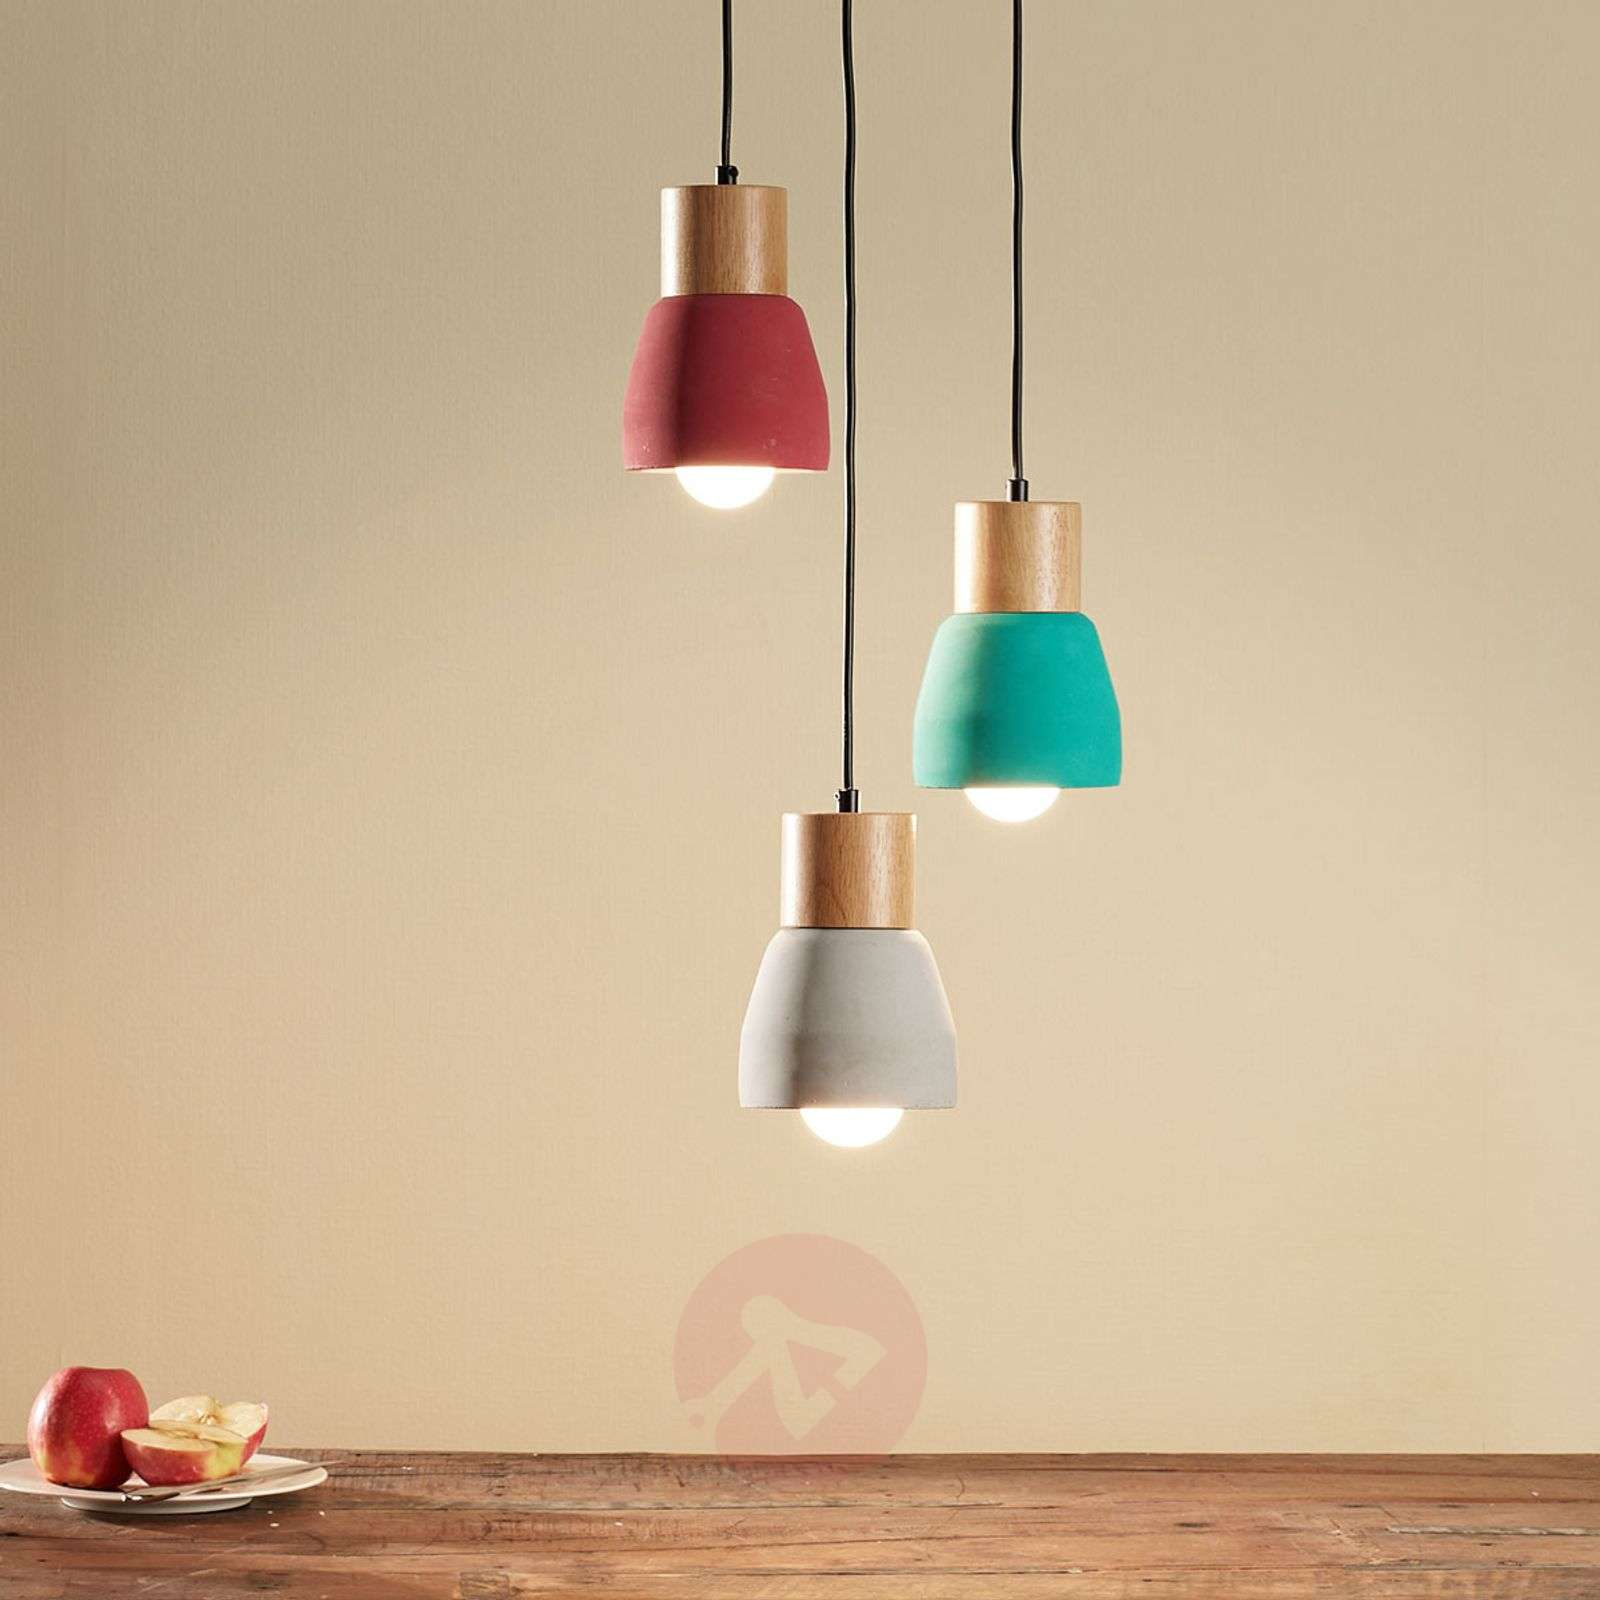 Concrete pendant light Margot with wood, 3-bulb-9984017-02